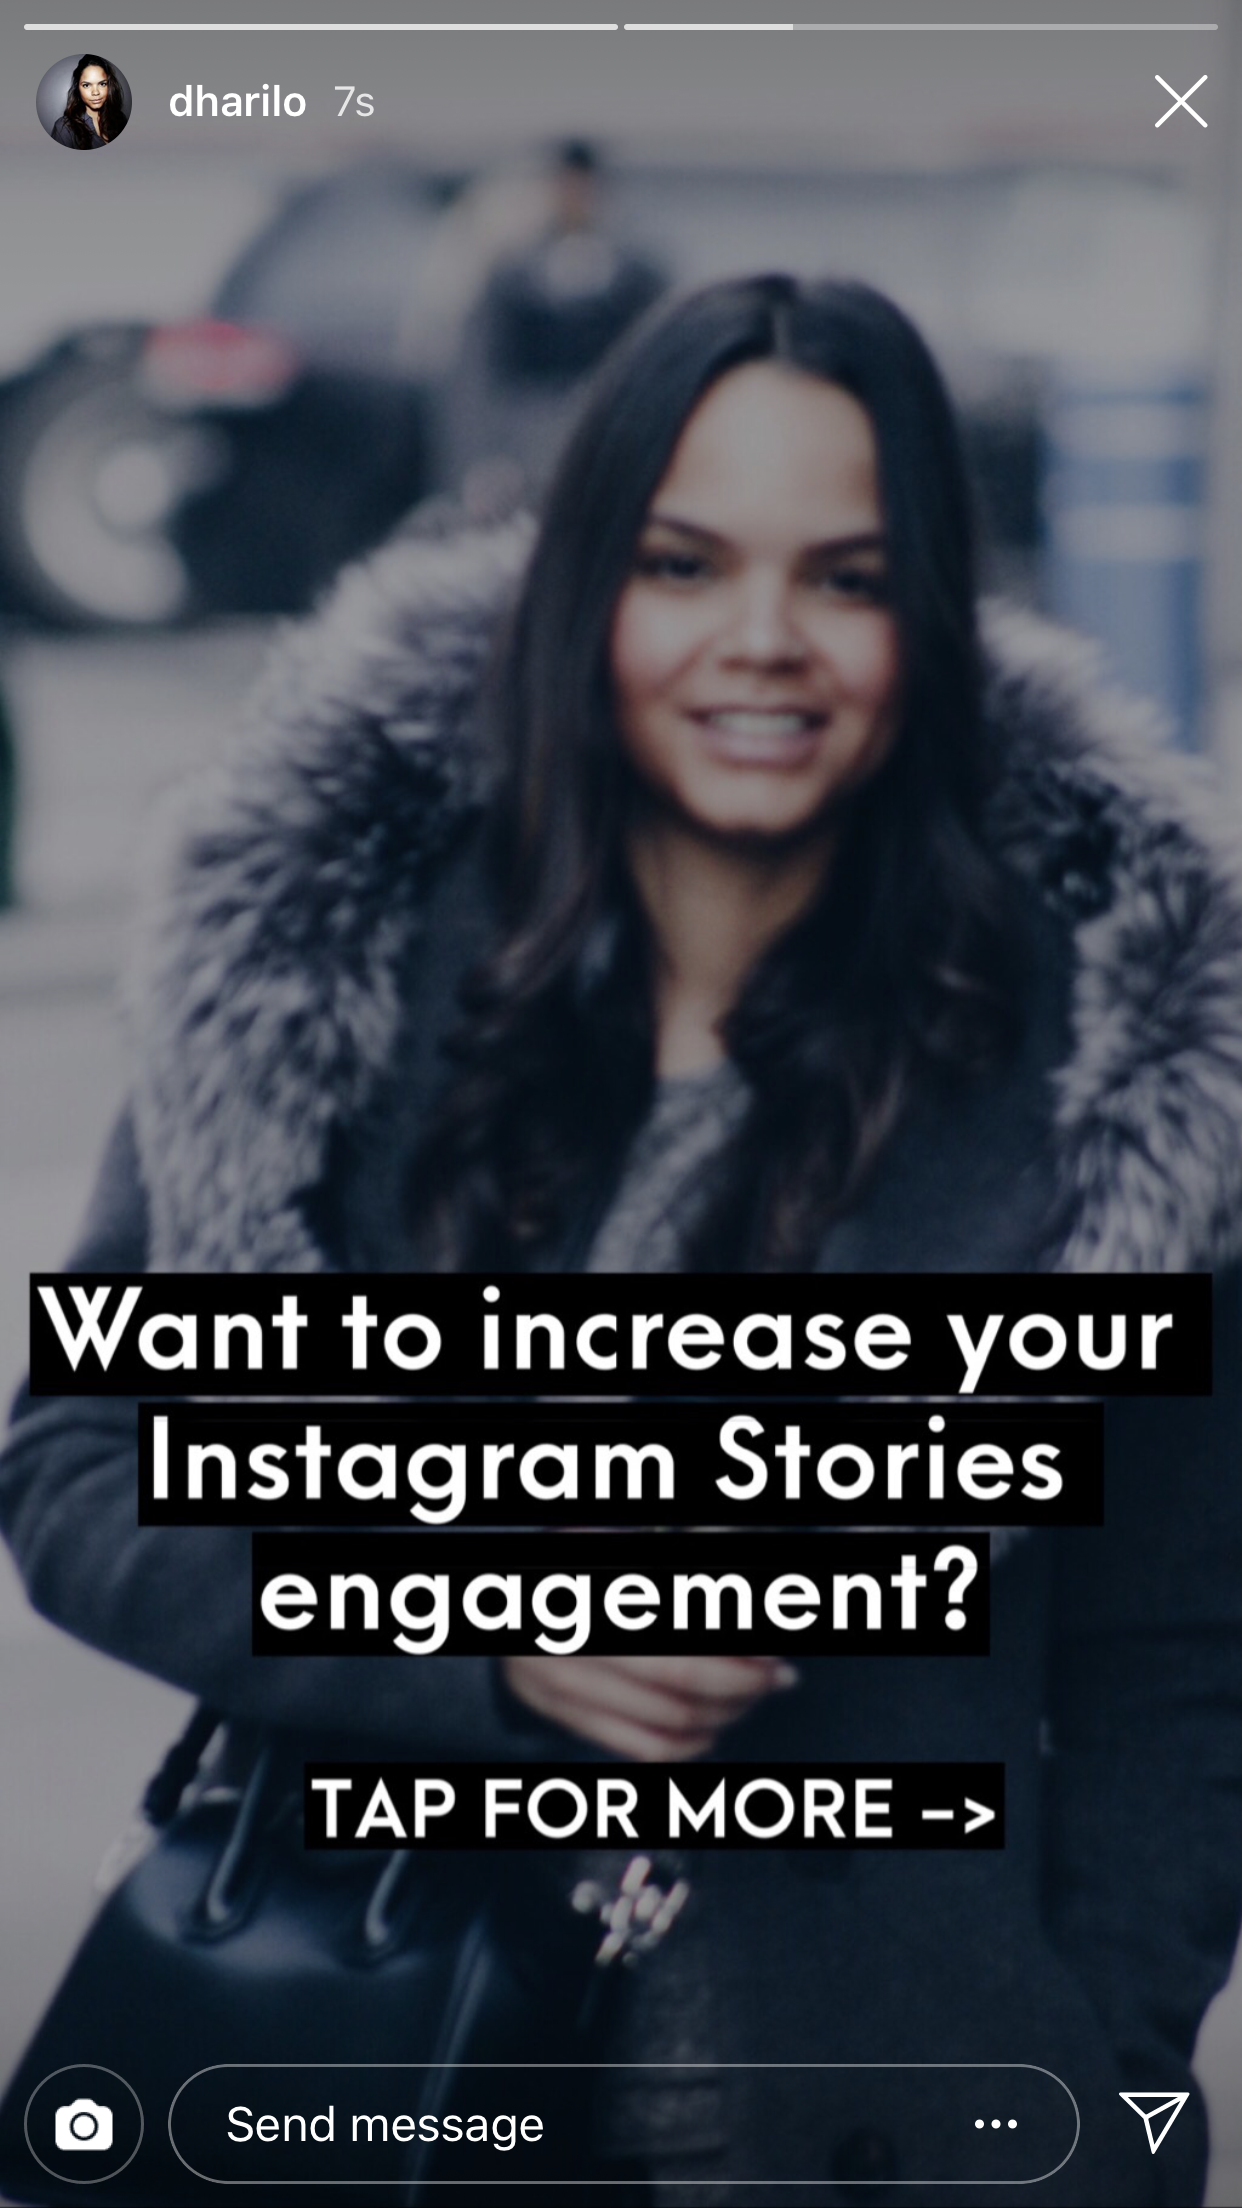 6 Tactics to Increase Your Instagram Stories Engagement